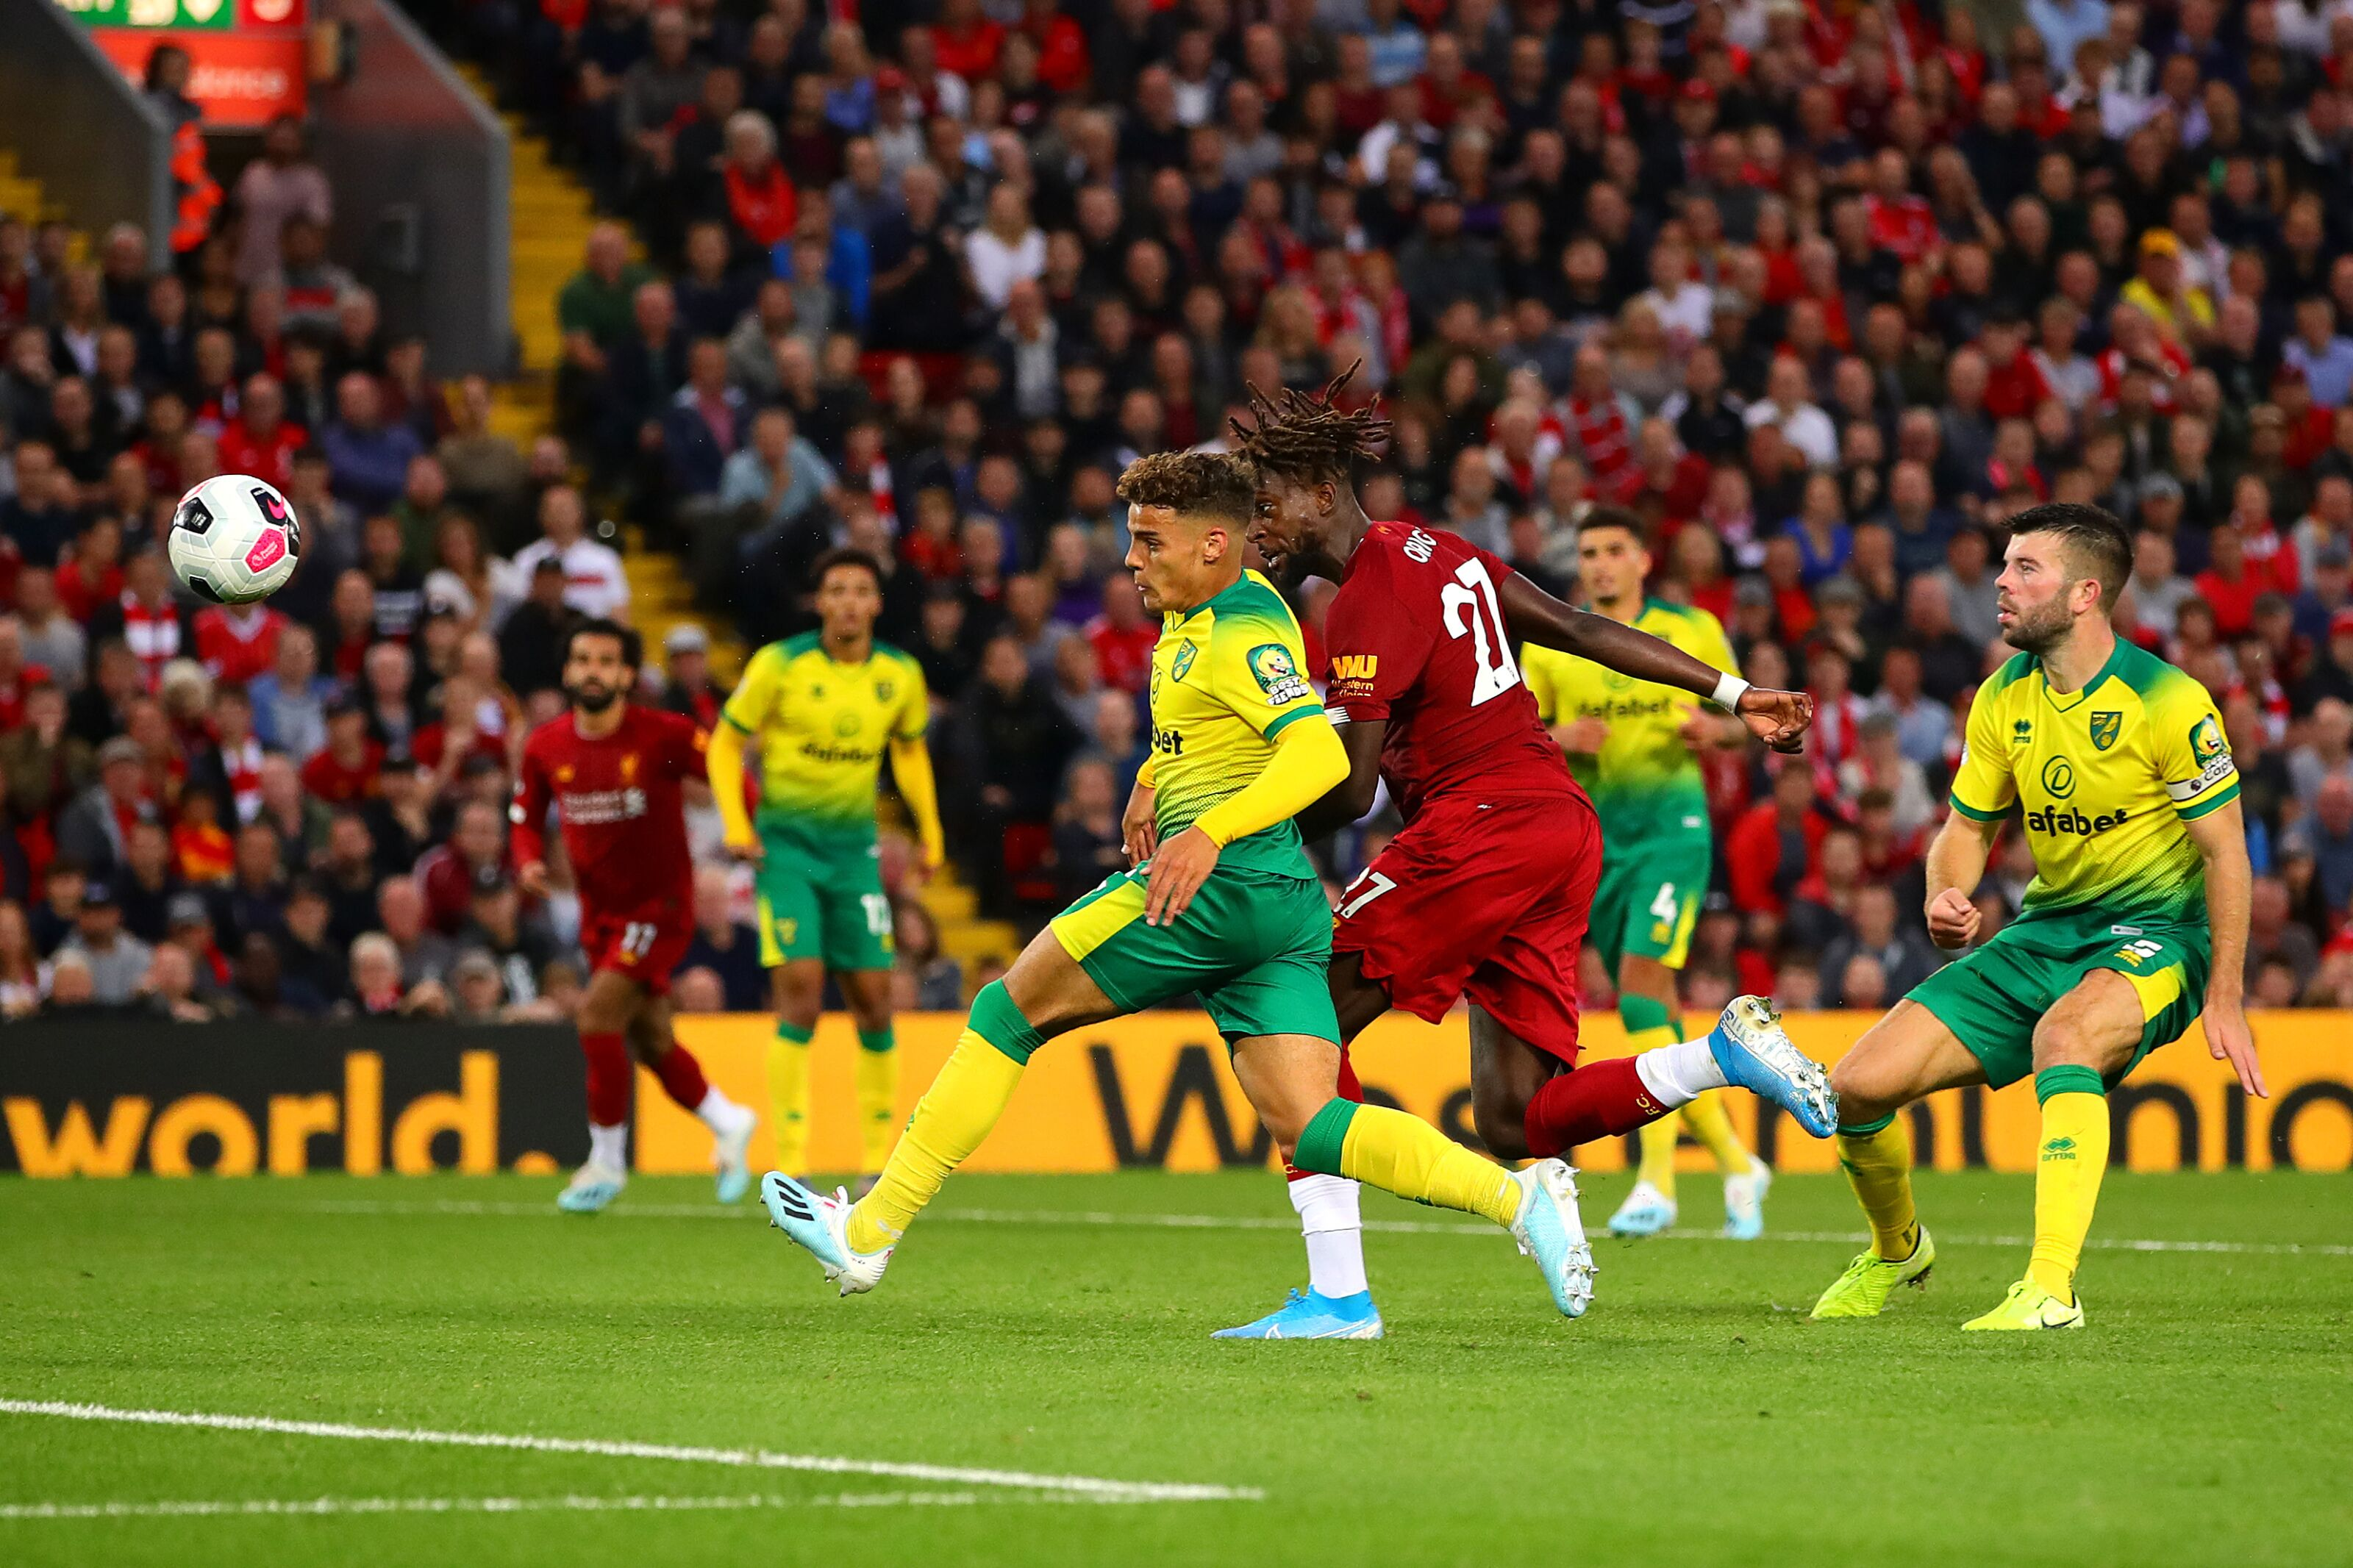 Liverpool vs Arsenal: Unai Emery must learn from Norwich's mistakes